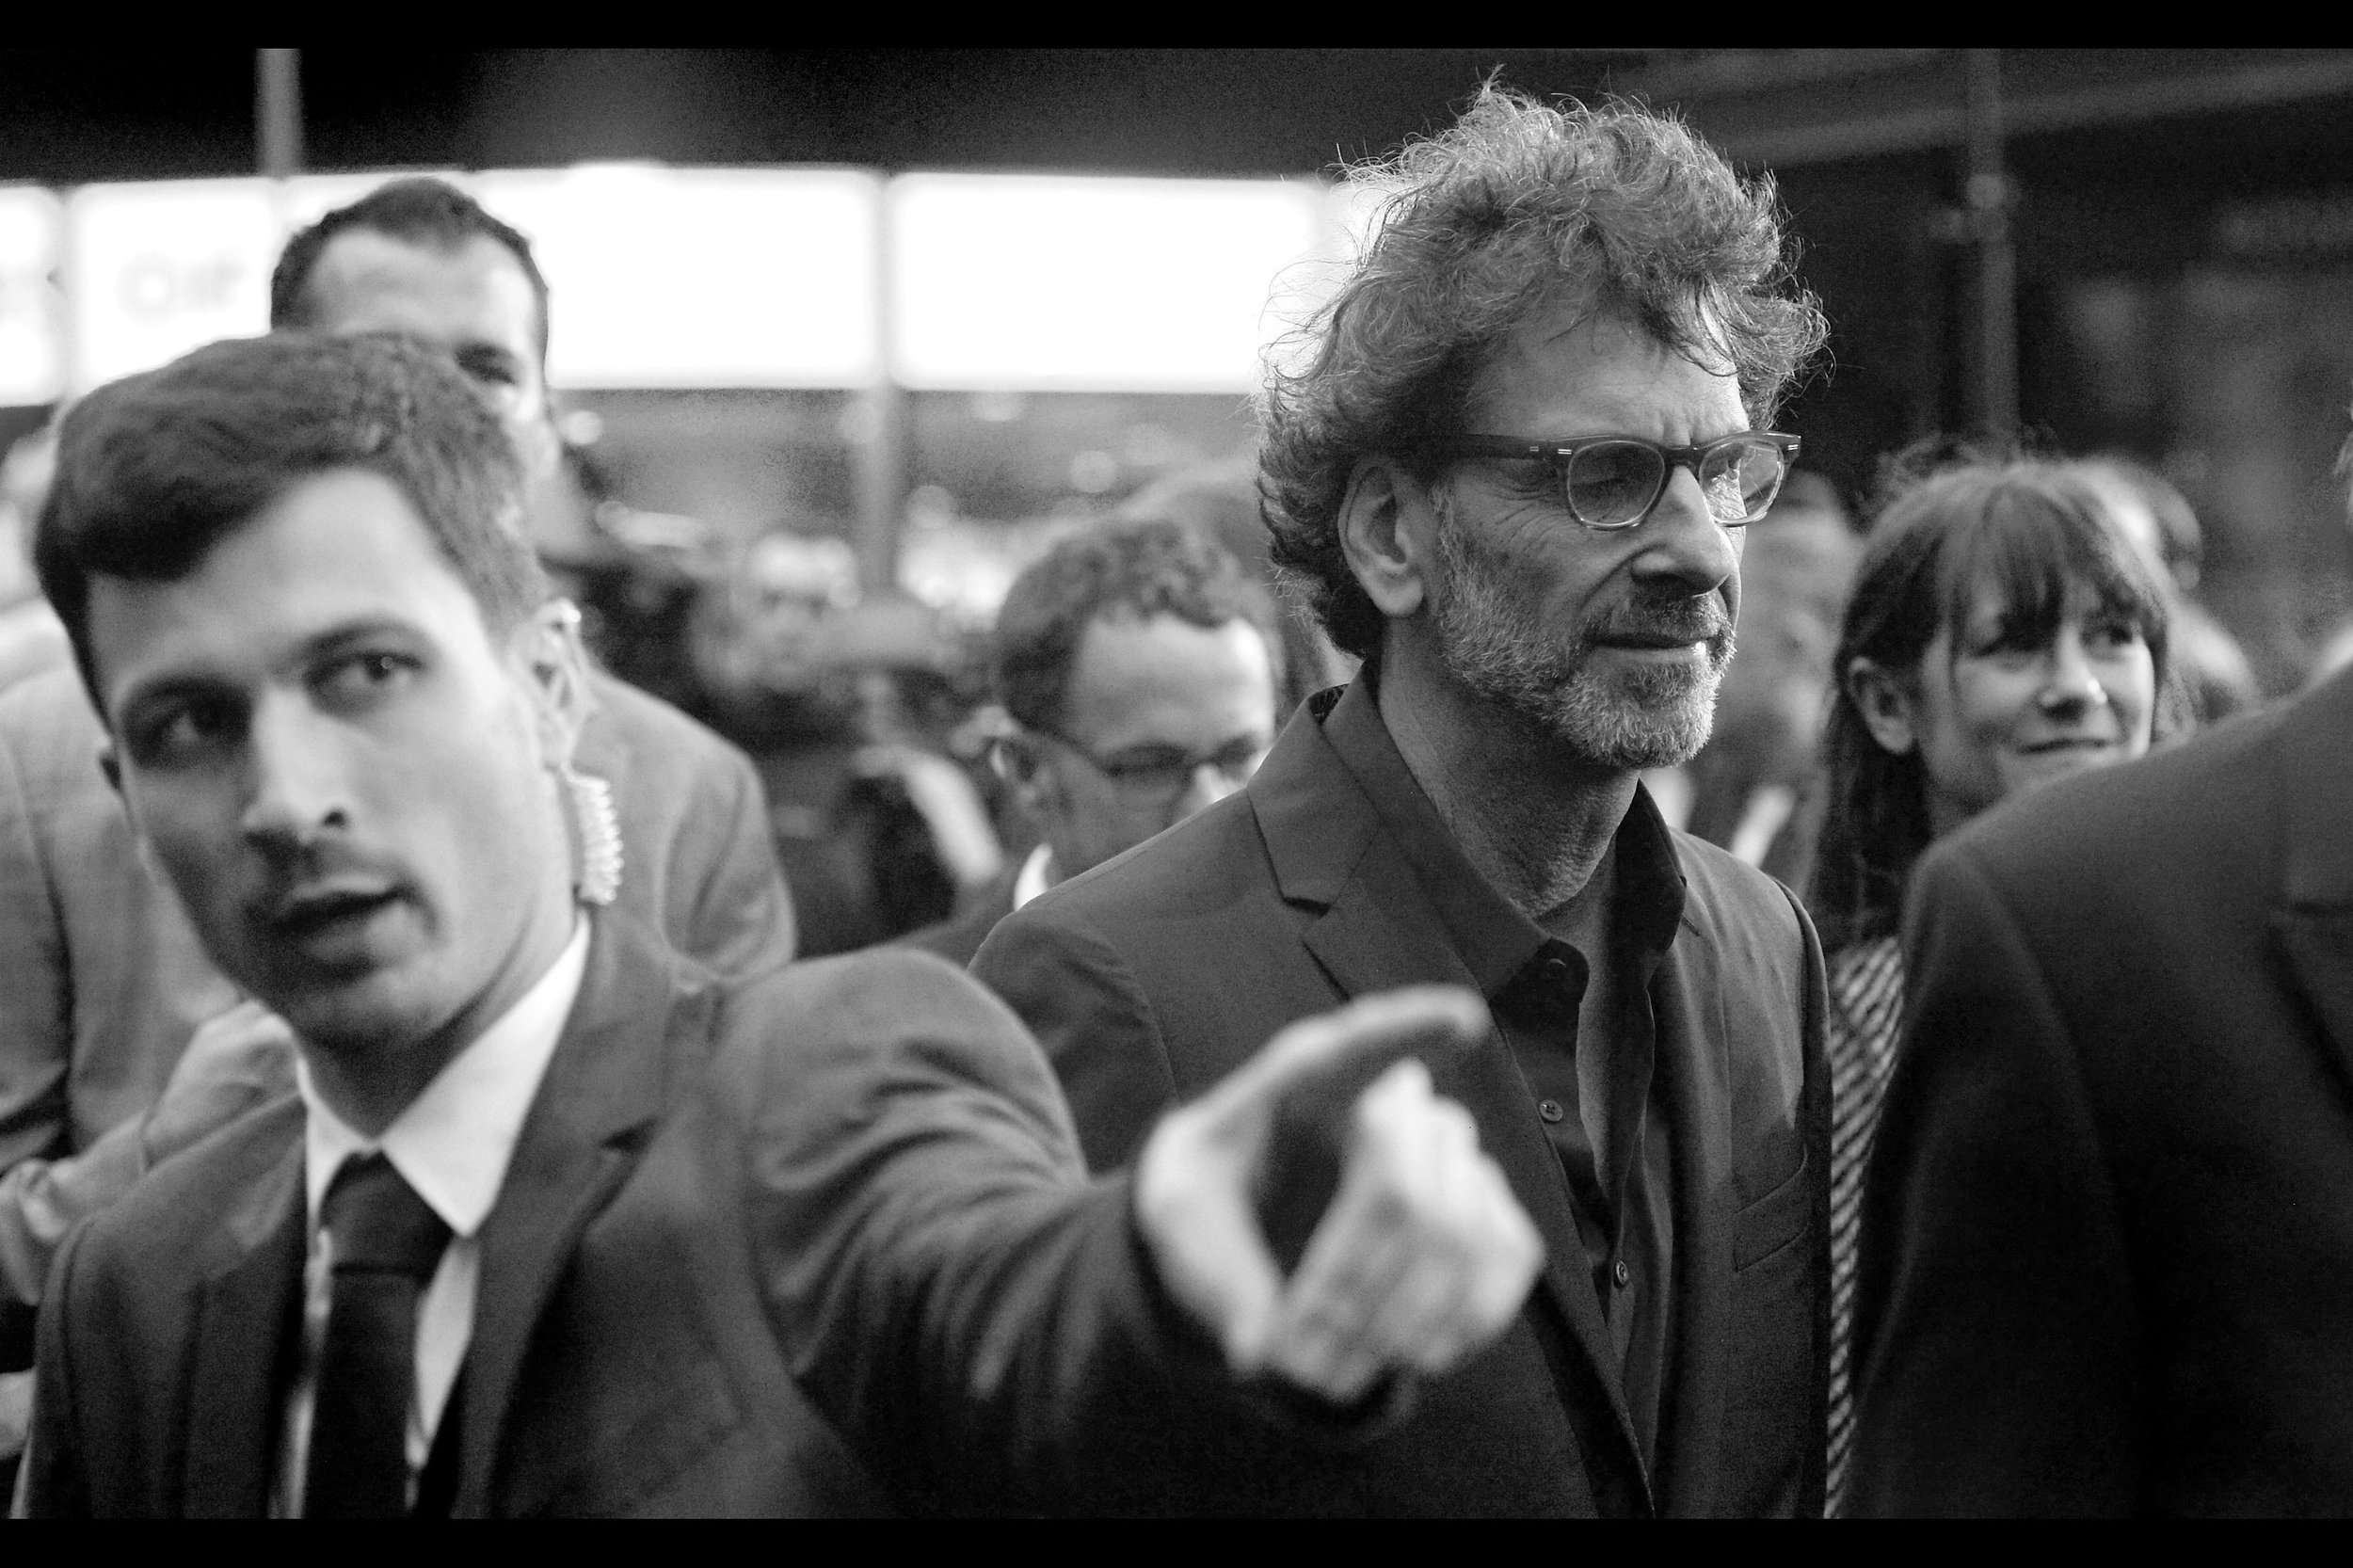 """""""Joel Coen is behind me and moving fast…. but there's a really nice steak place just around that corner you might want to check out."""""""